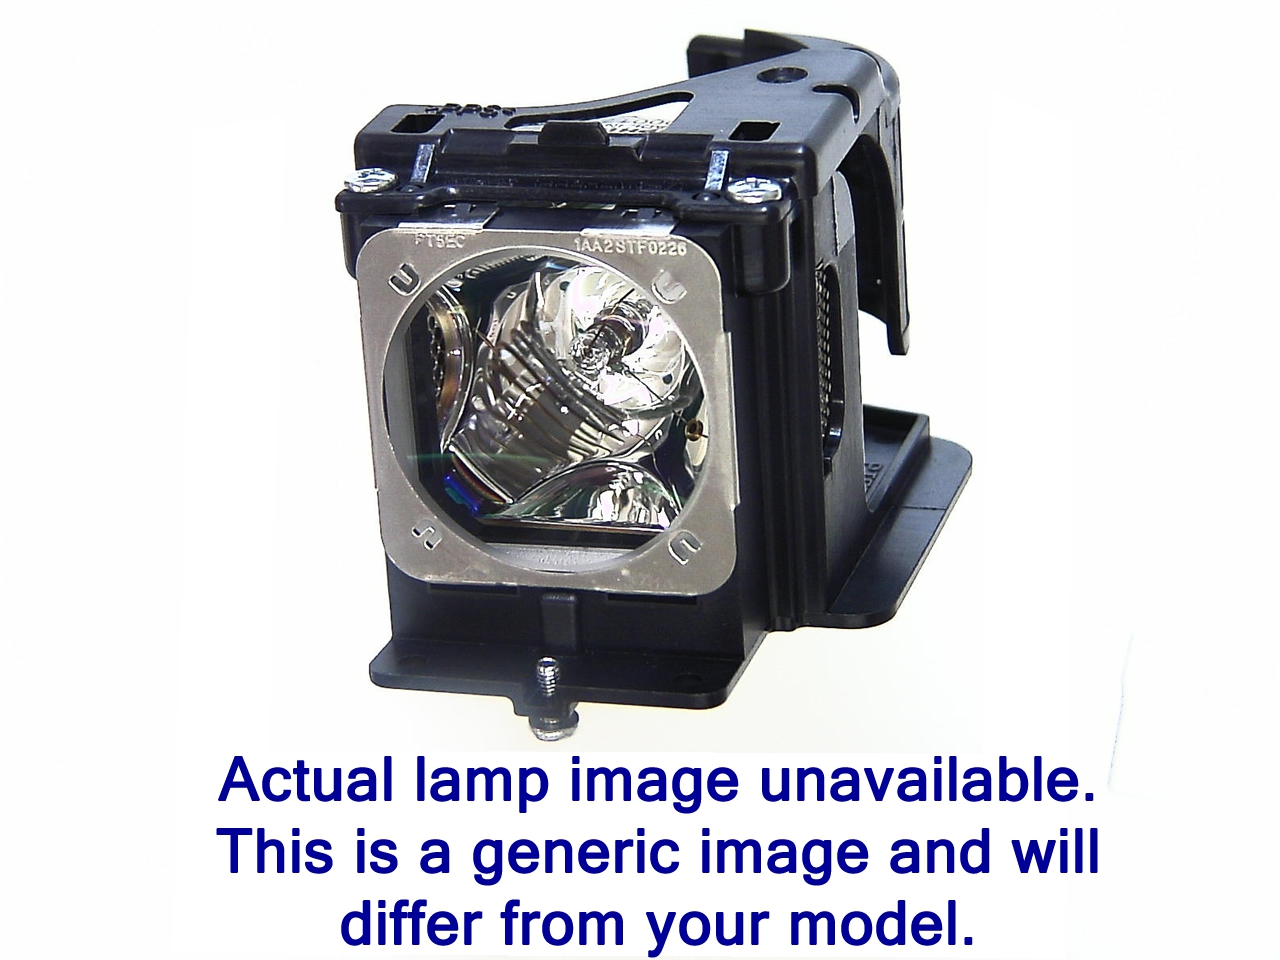 RCA 260962 Projector Replacement Lamp for HD50LPW162YX3, HD50LPW162YX4